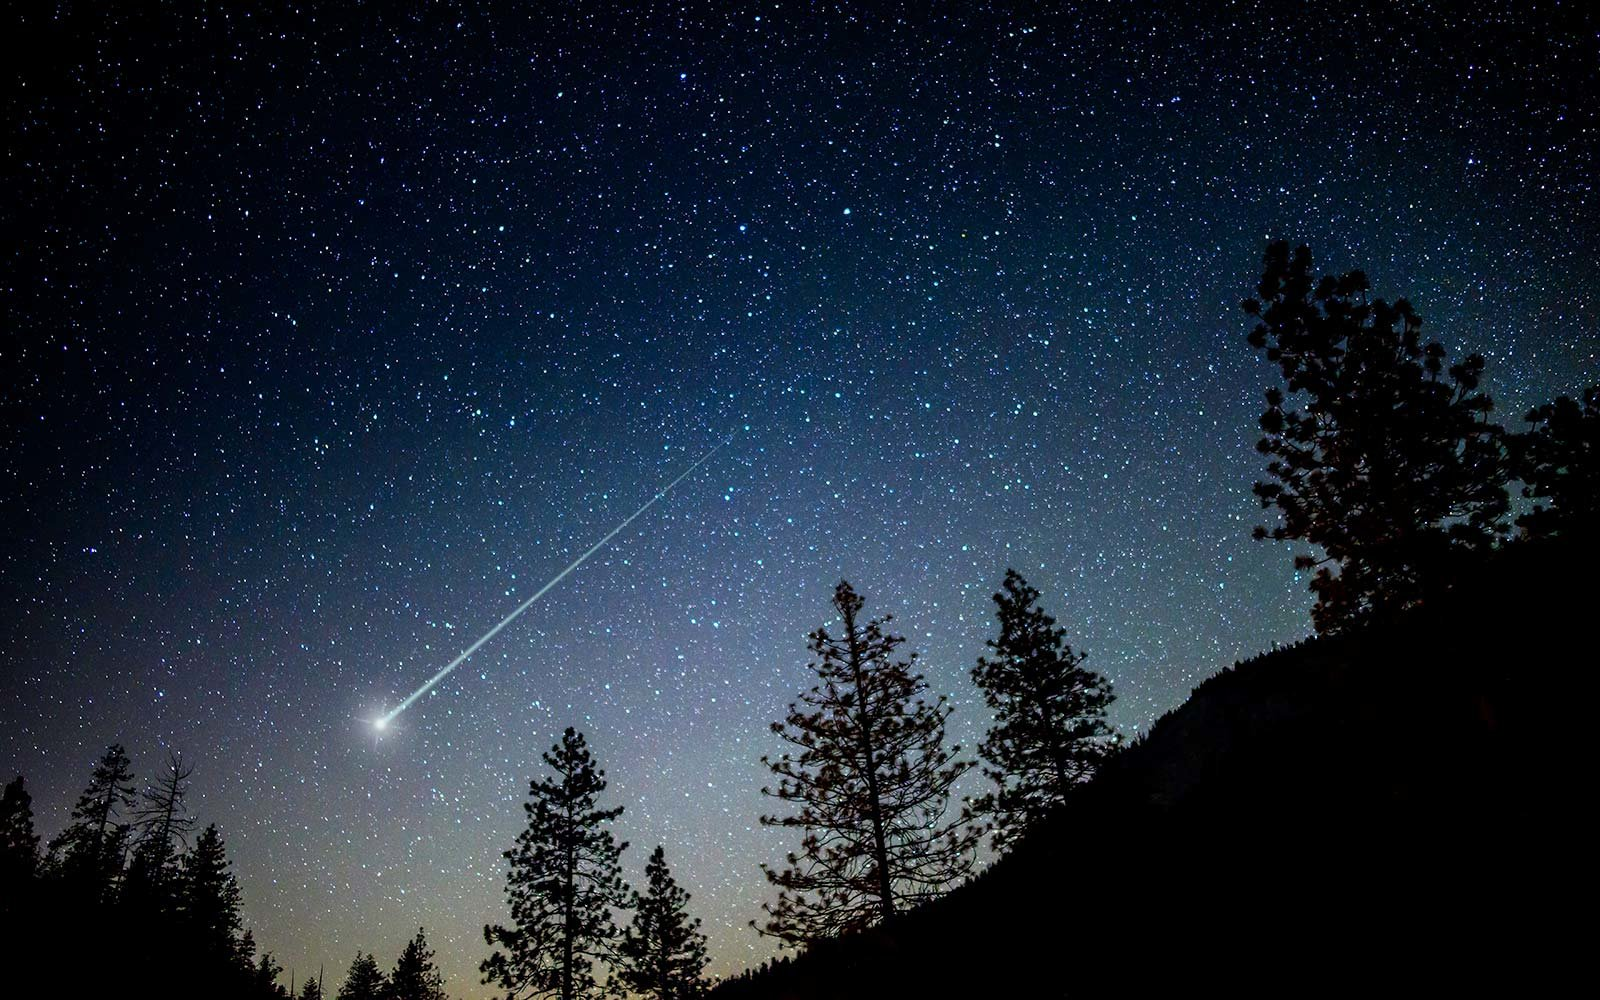 asteroid in the sky - photo #3